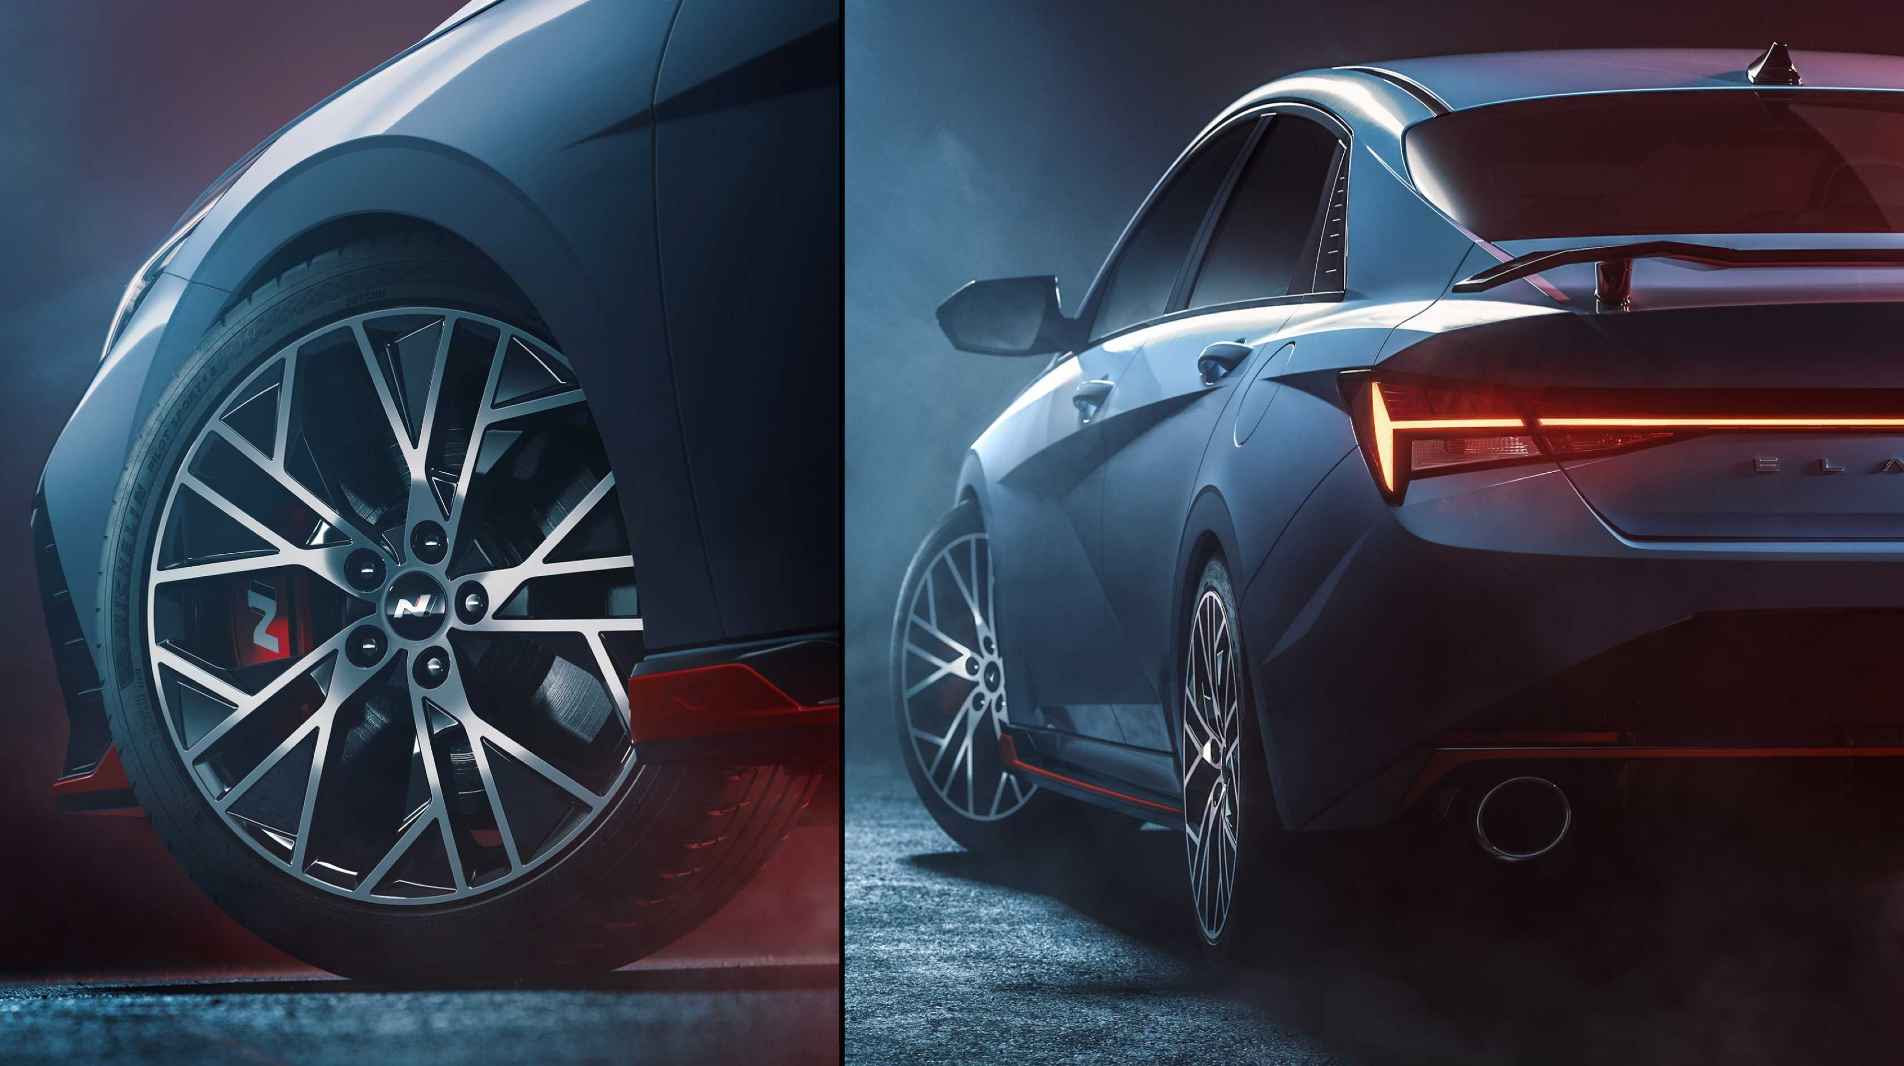 This is the first official confirmation of a full-fledged N version of the new Hyundai Elantra. Image: Hyundai